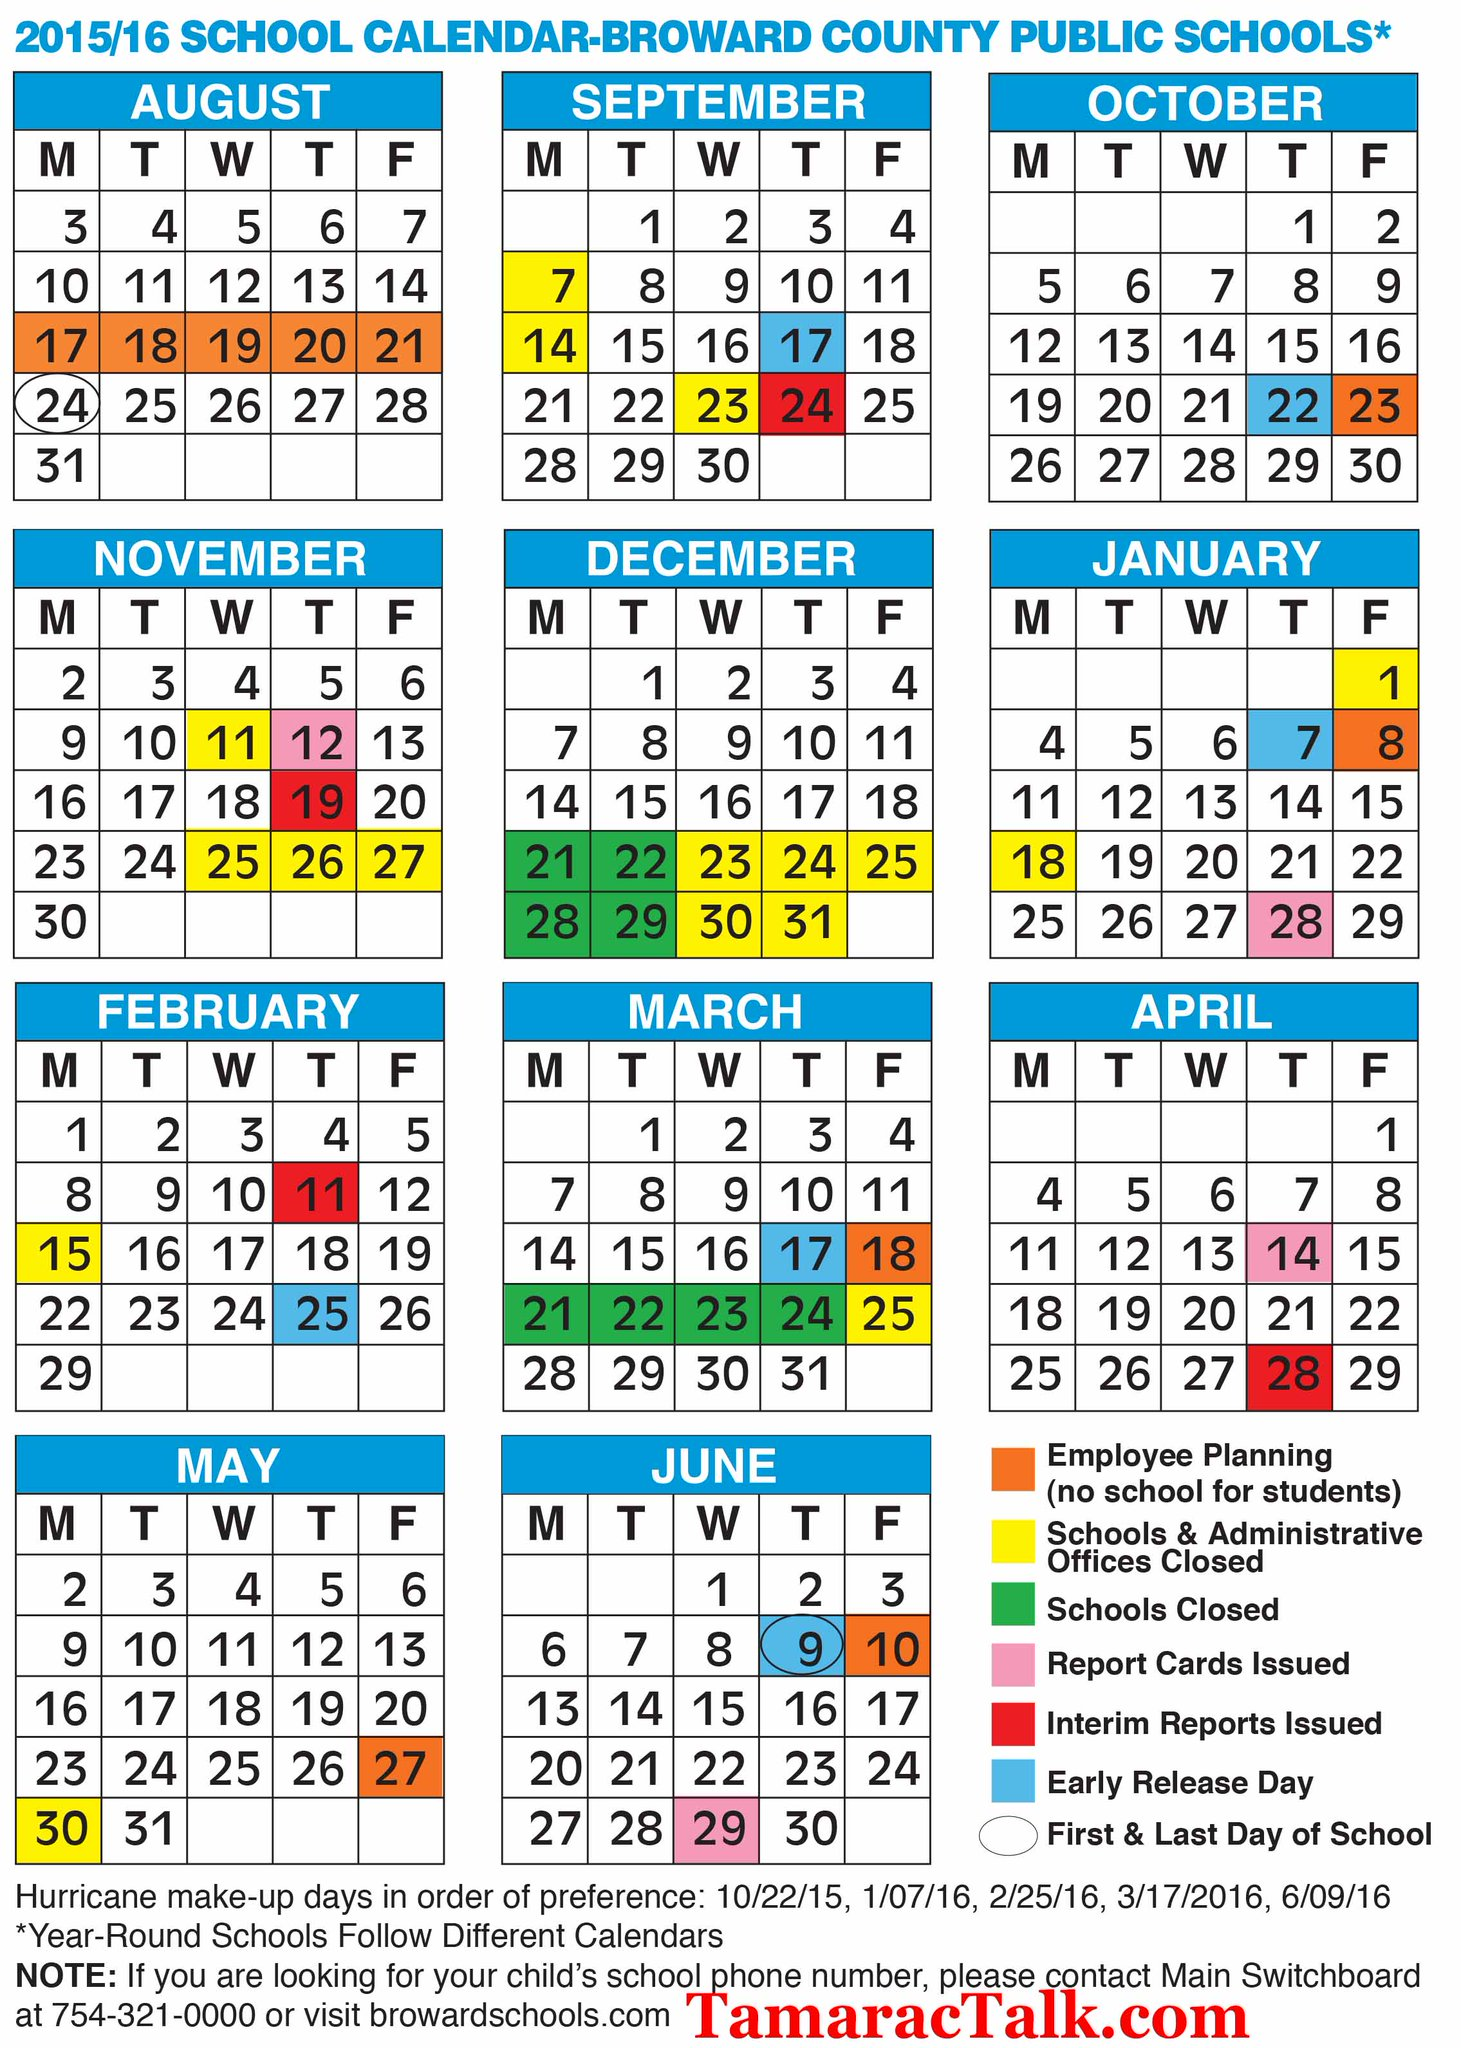 "Tamarac Talk on Twitter: ""Broward County School Calendar Here for"